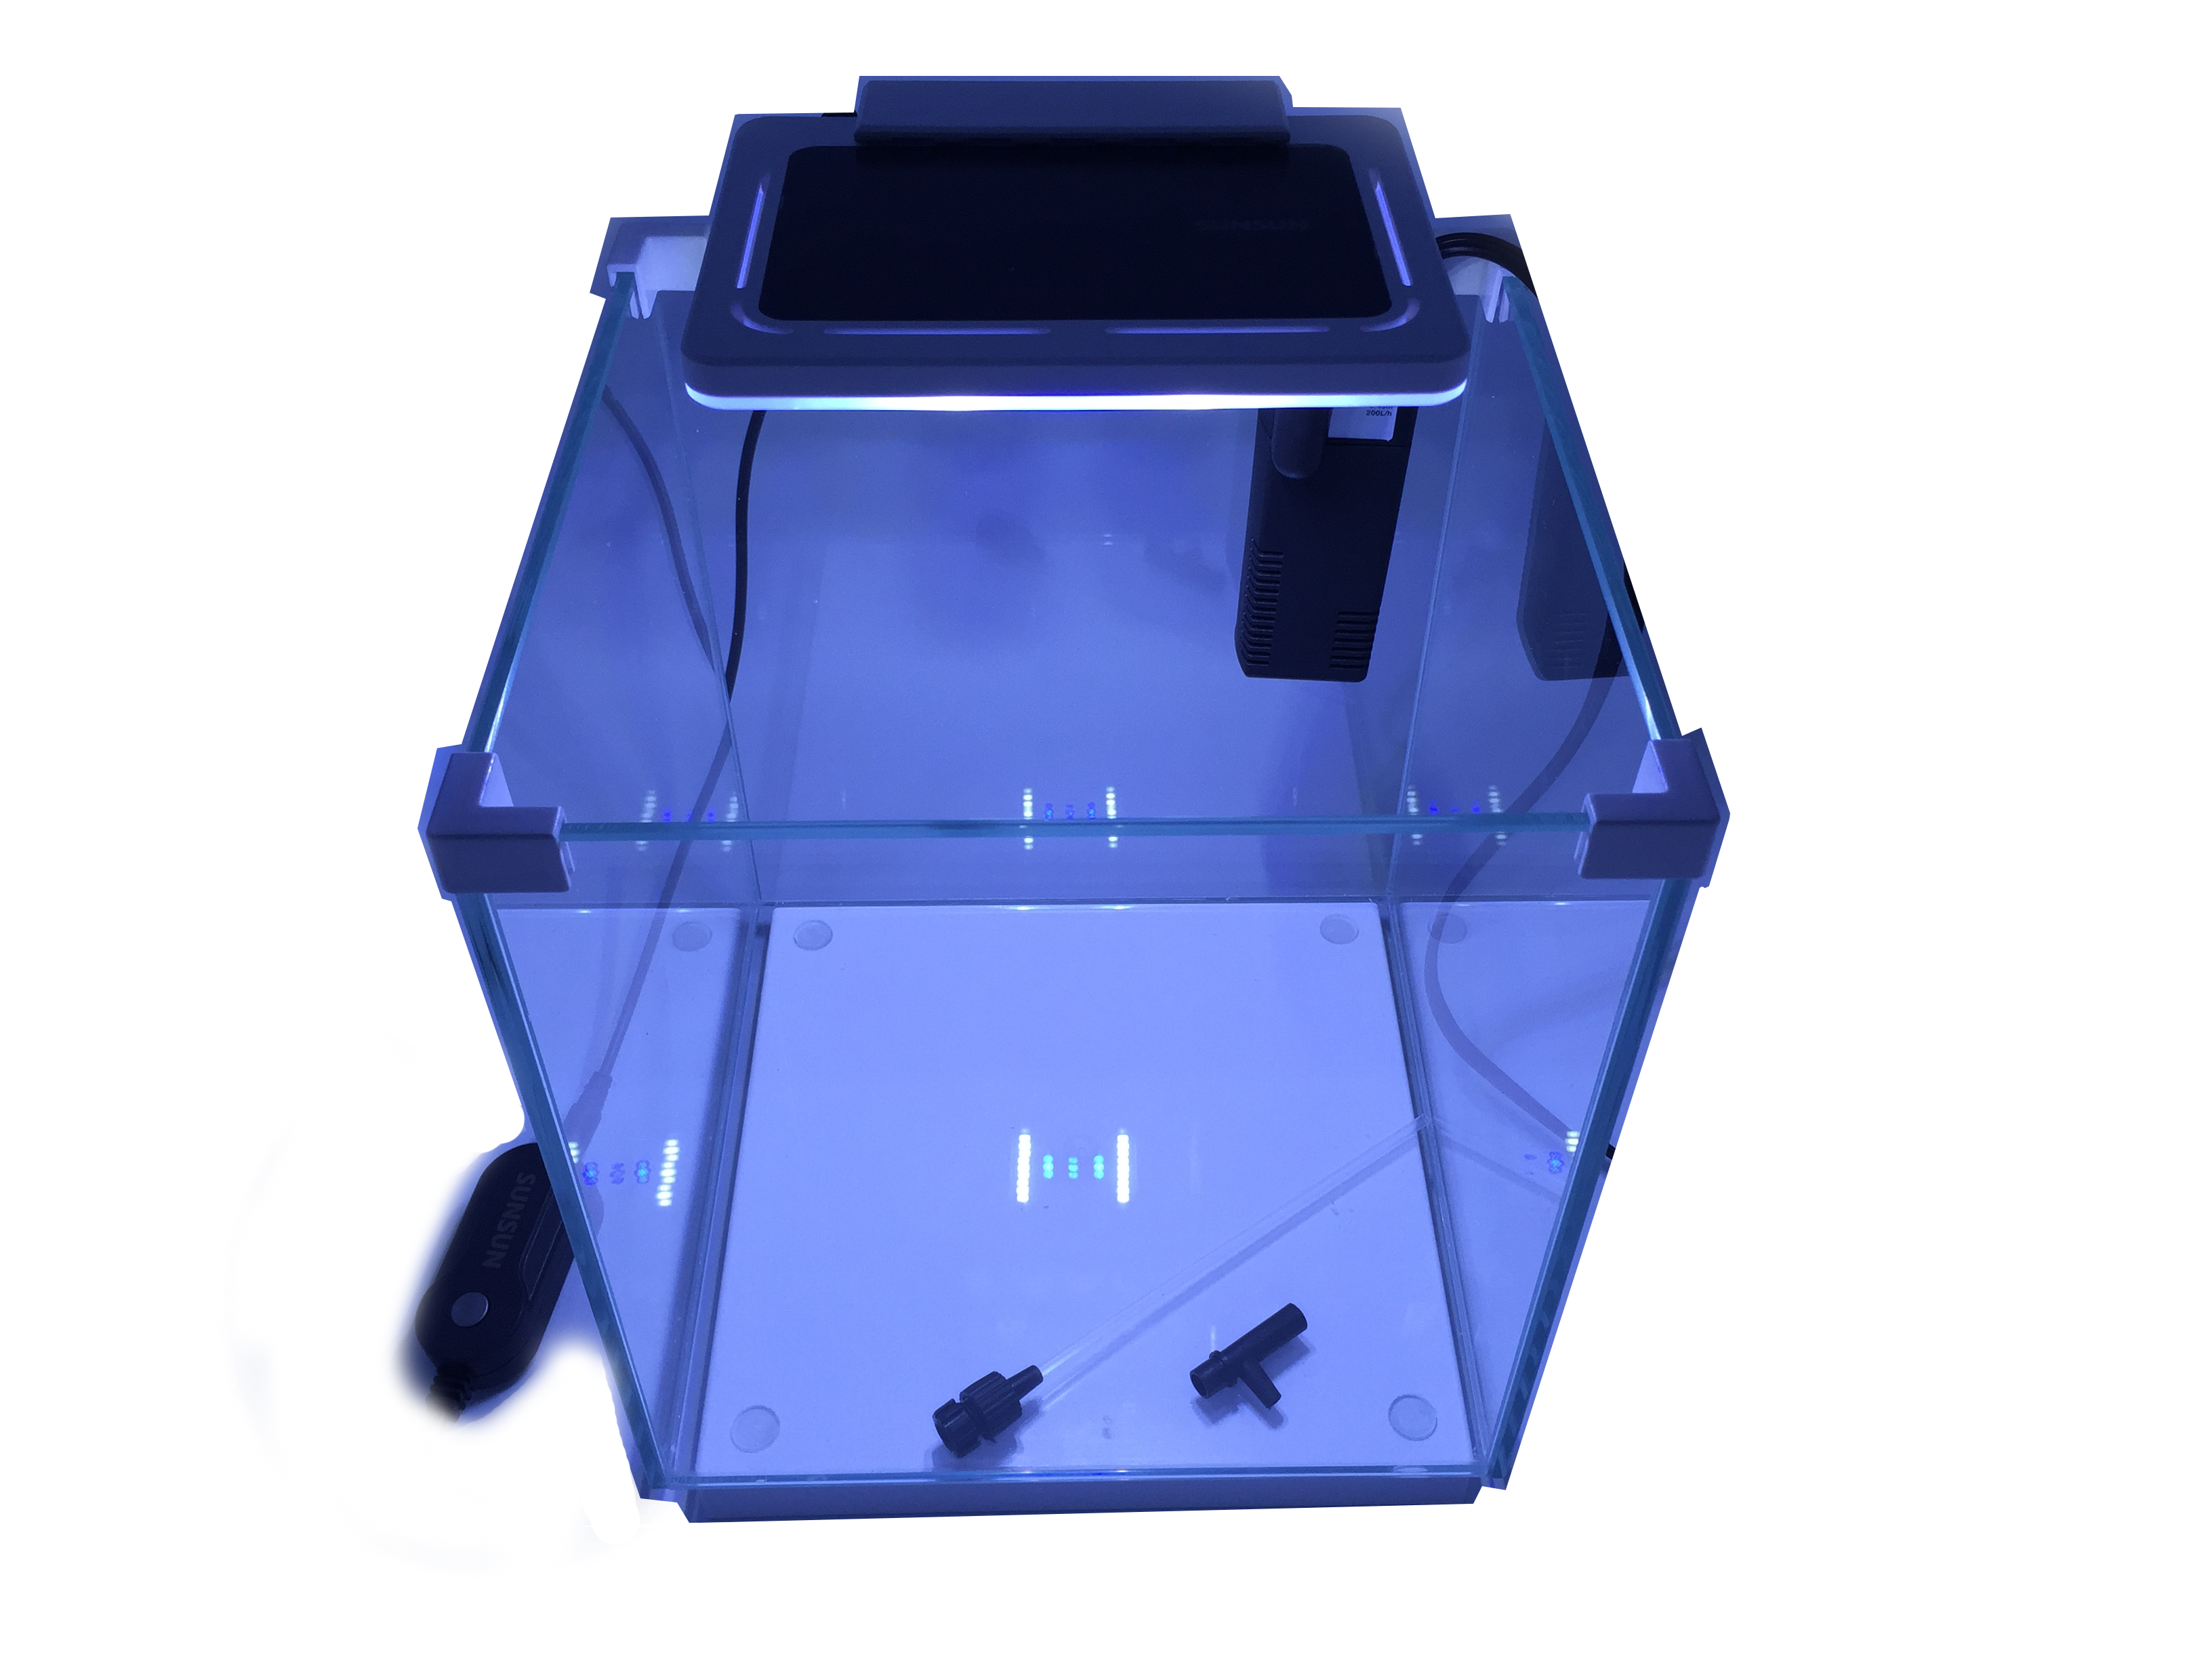 Aquarium tanks for sale melbourne predator tank for sale for Aquariums for sale near me